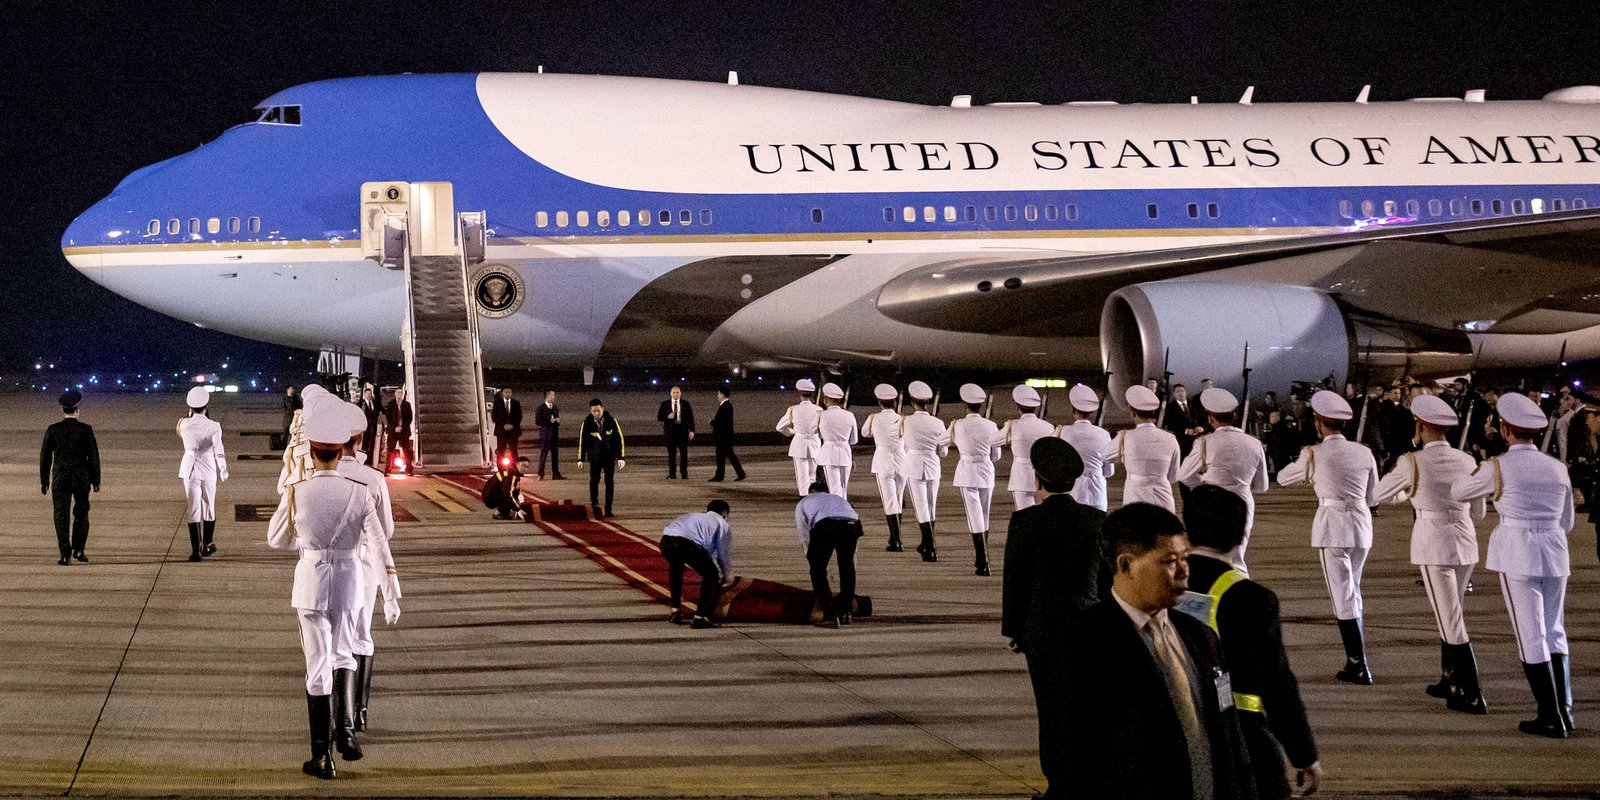 Workers roll out a red carpet in front of Air Force One carrying US President Donald Trump at Noi Bai International Airport in Hanoi, Vietnam, on 26 February 2019. Photographer: Justin Chin/Bloomberg via Getty Images